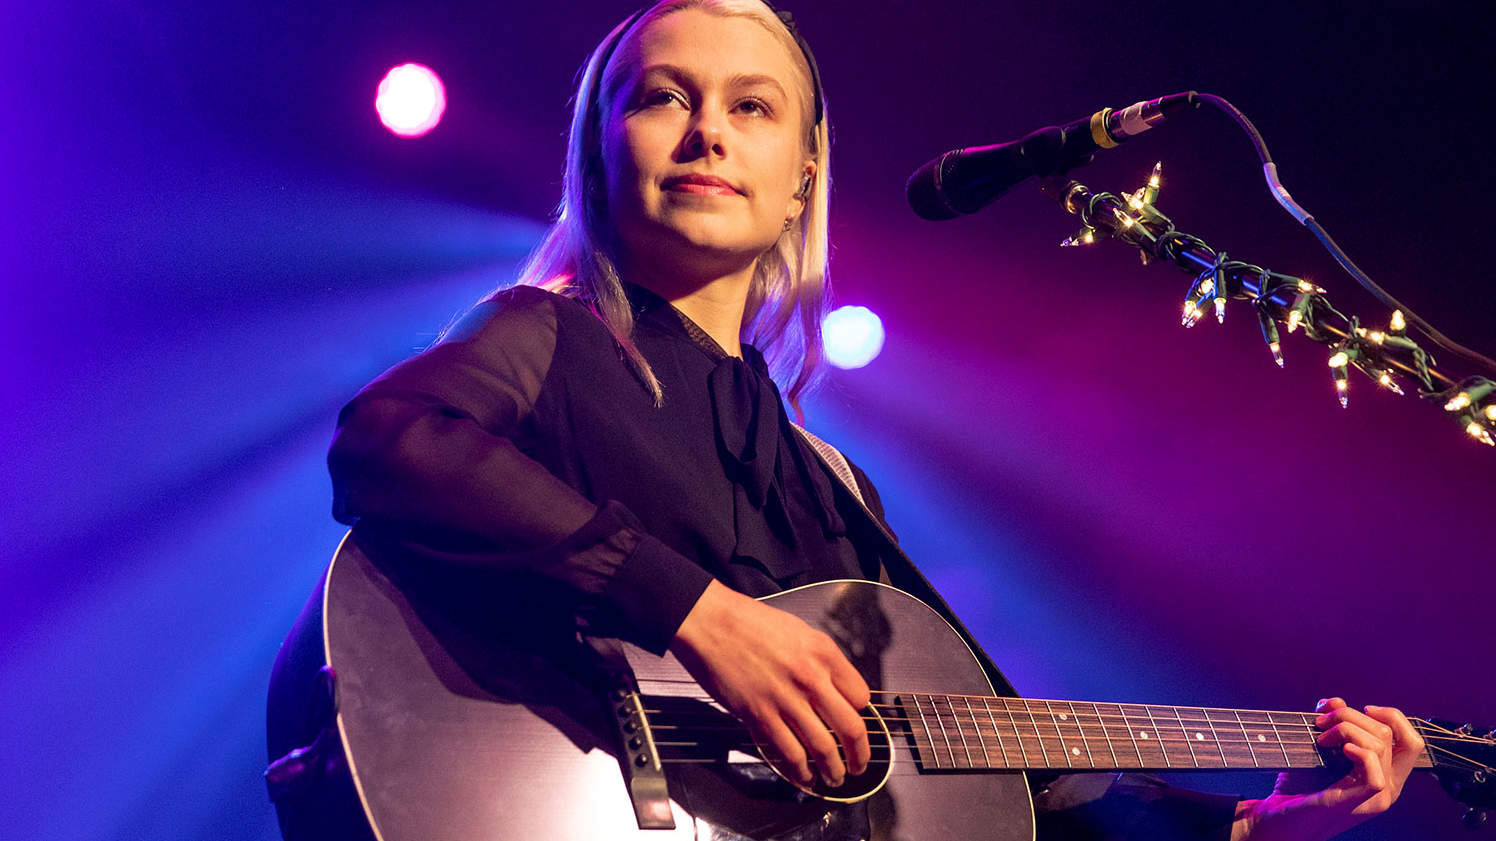 Phoebe Bridgers Breaks Silence on Ryan Adams Abuse Allegations as Mandy Moore Offers Support